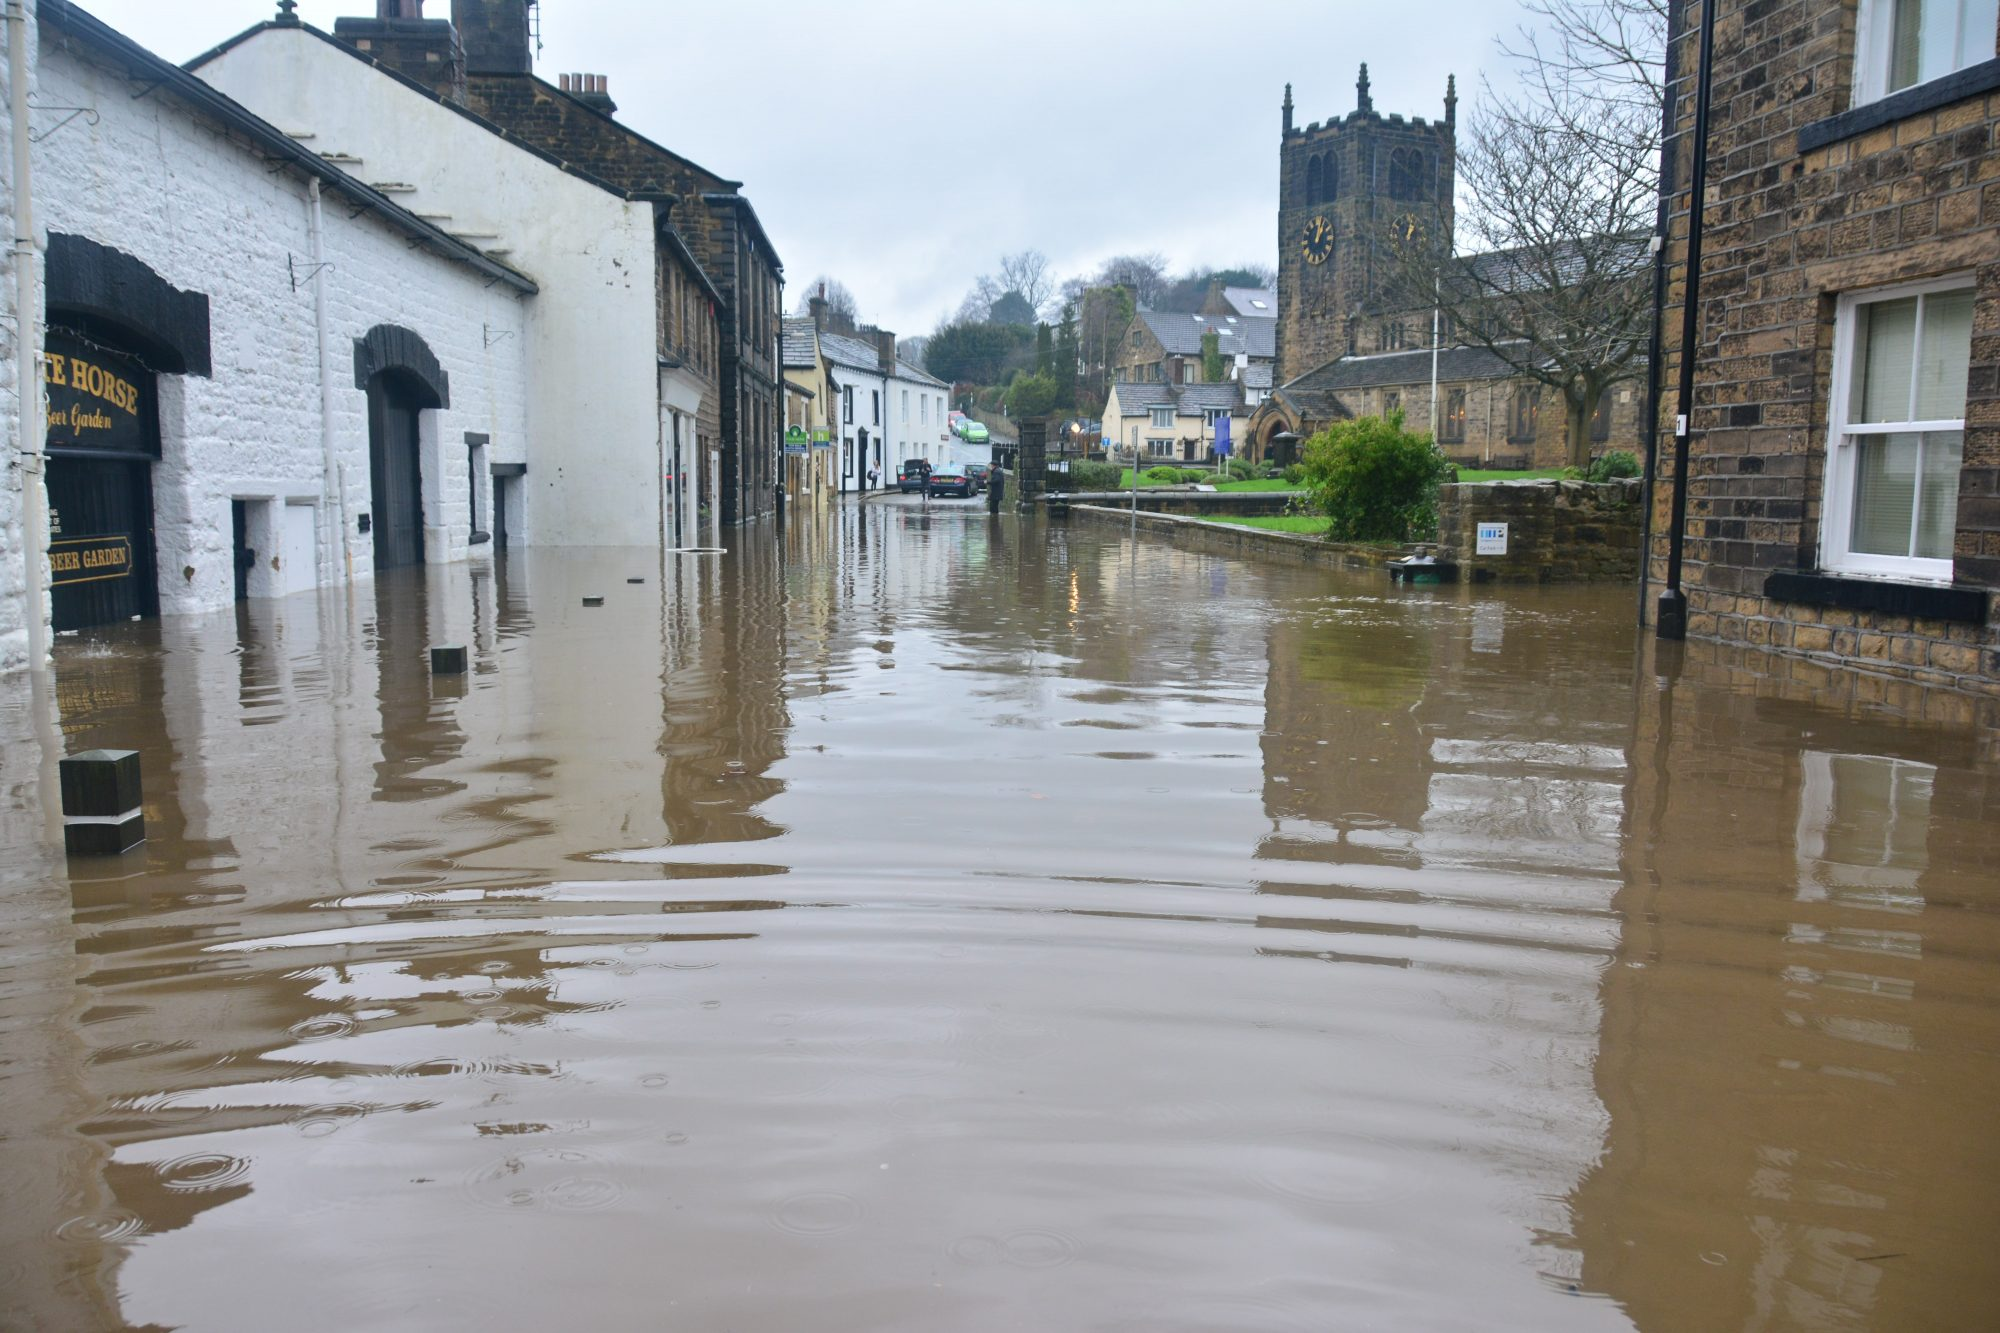 How to guard properties from flood damage